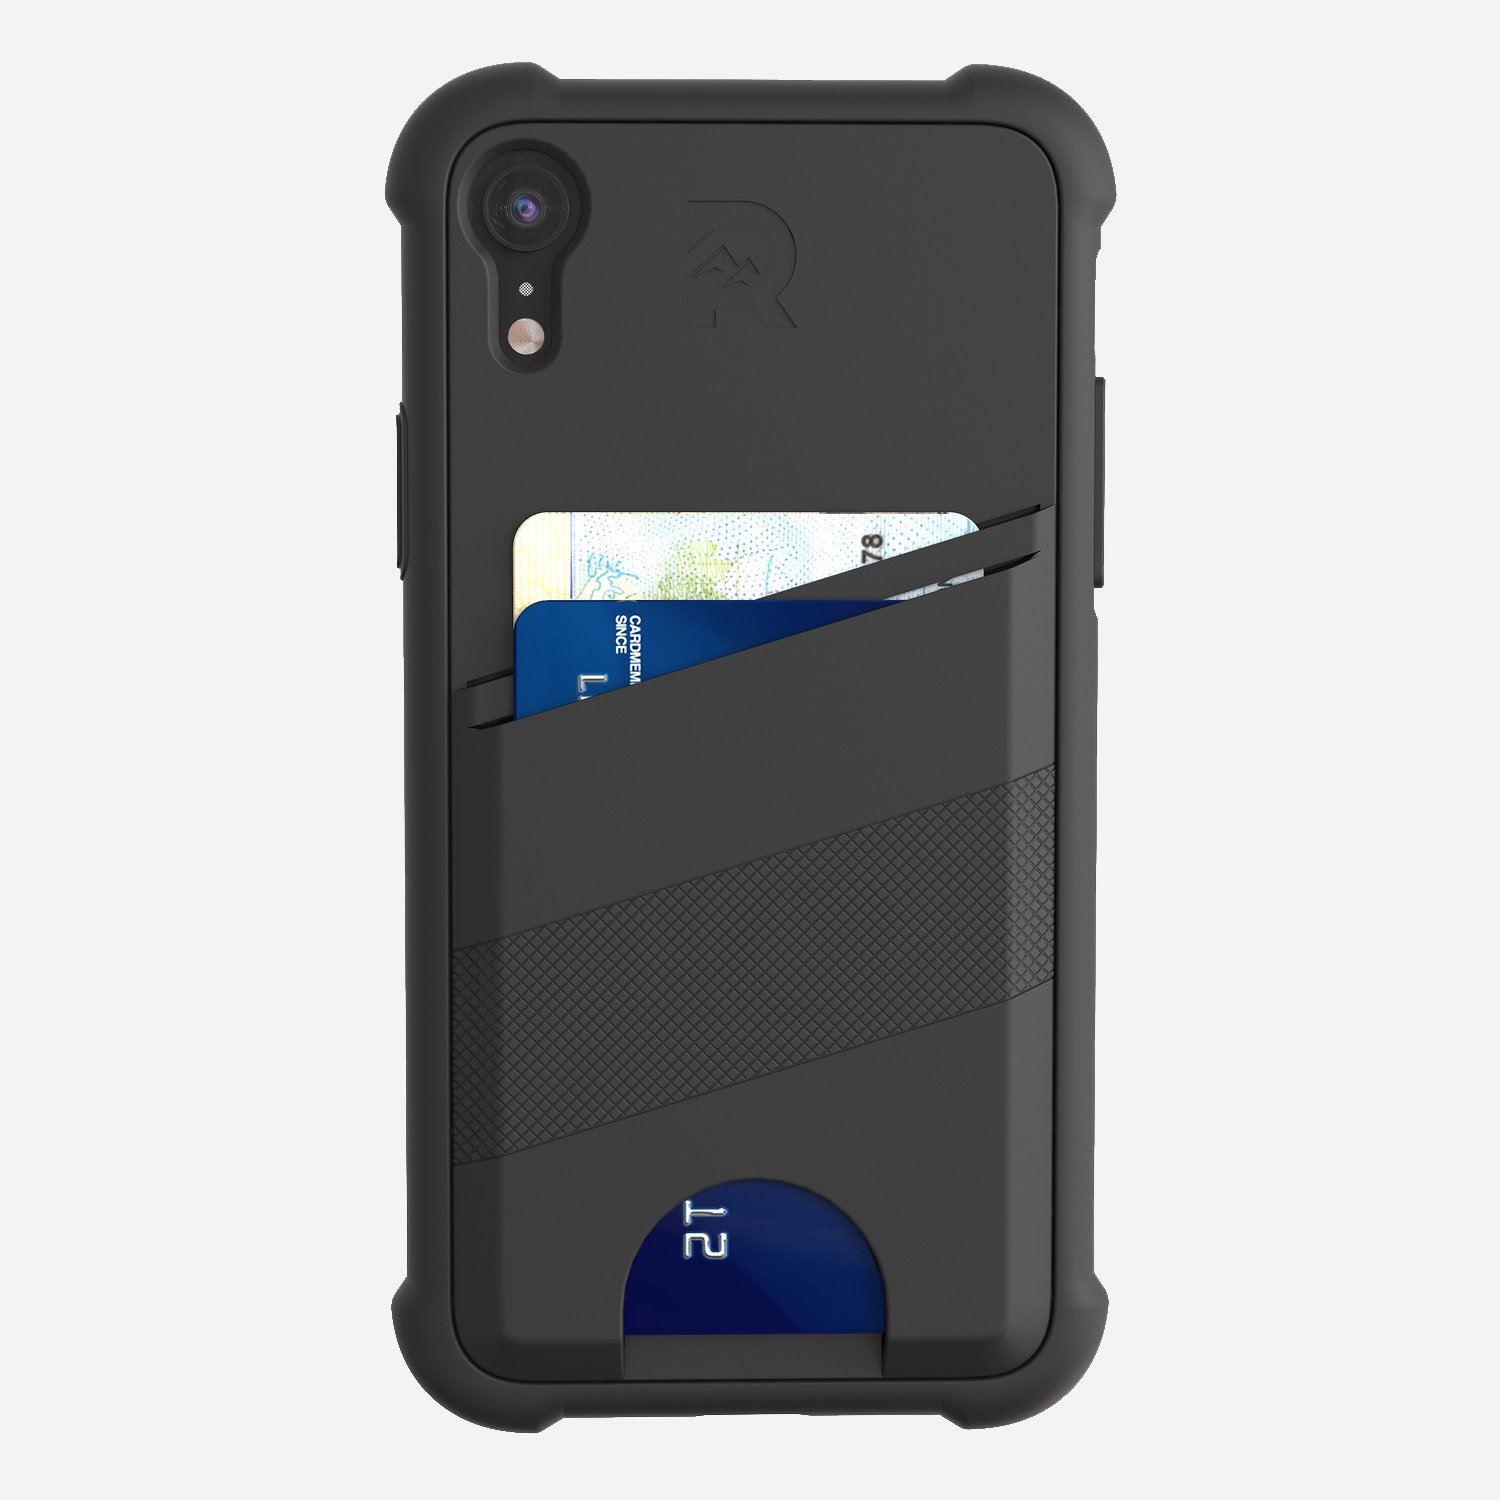 The Shockproof Card Case - iPhone XR